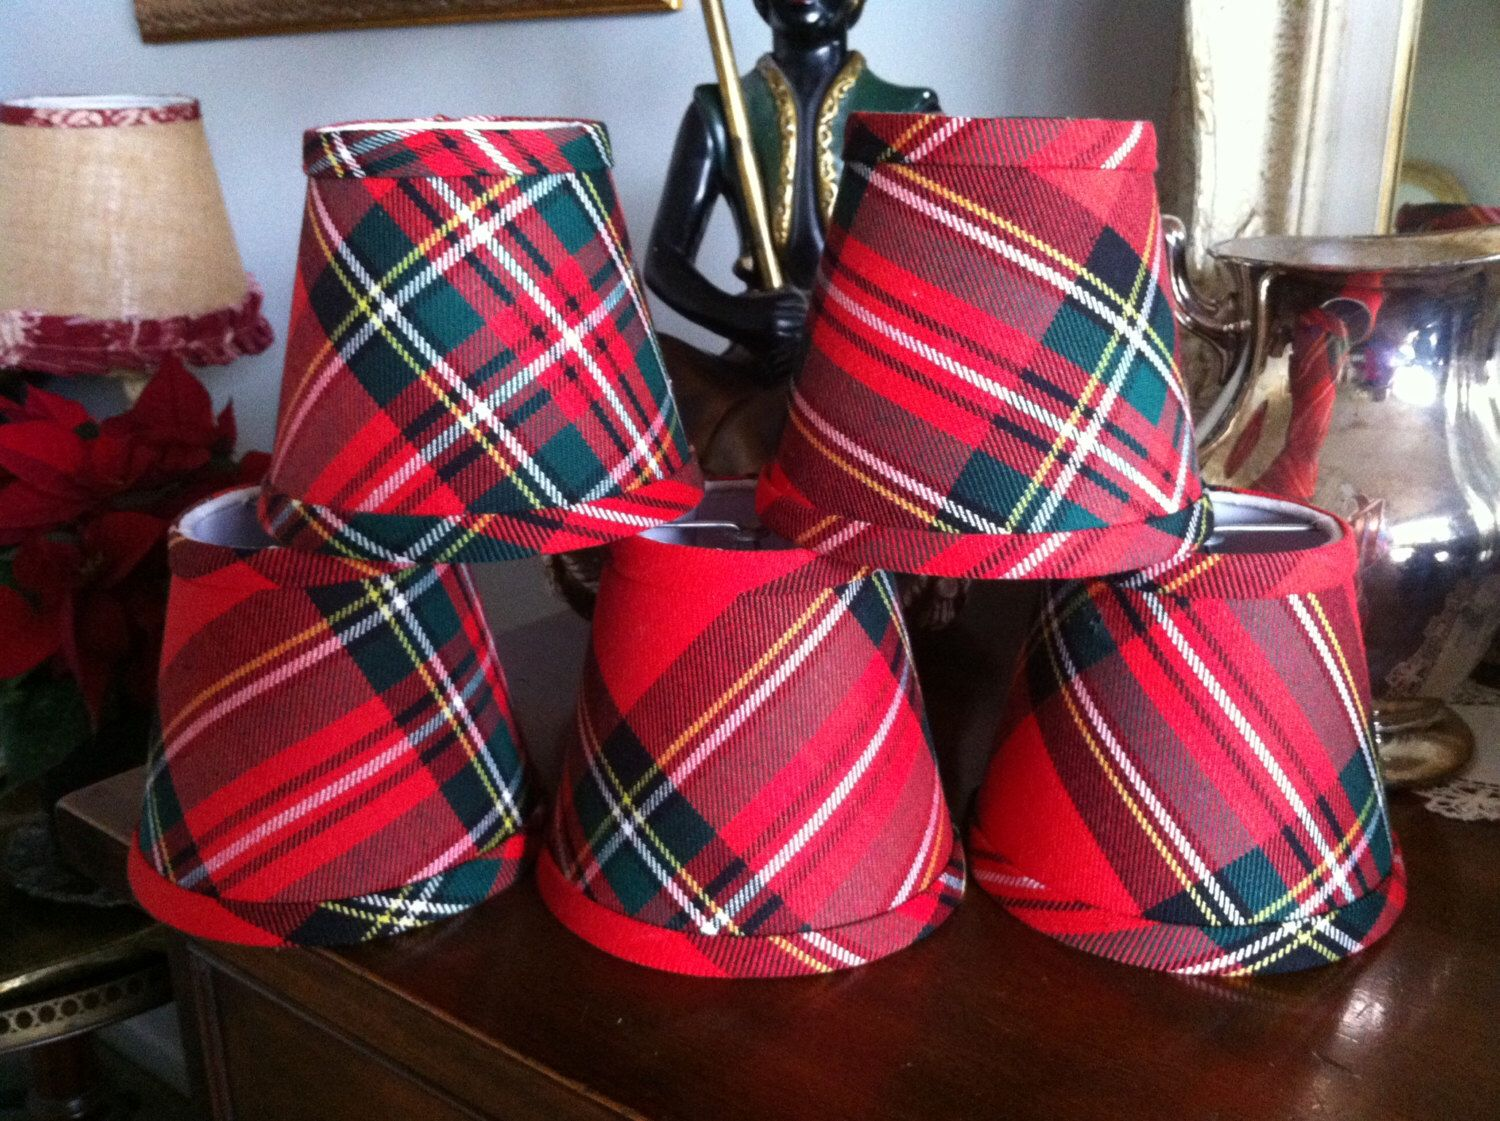 Red Tartan Chandelier Lampshade Plaid Shade Shades By Simplyshades On Etsy Https